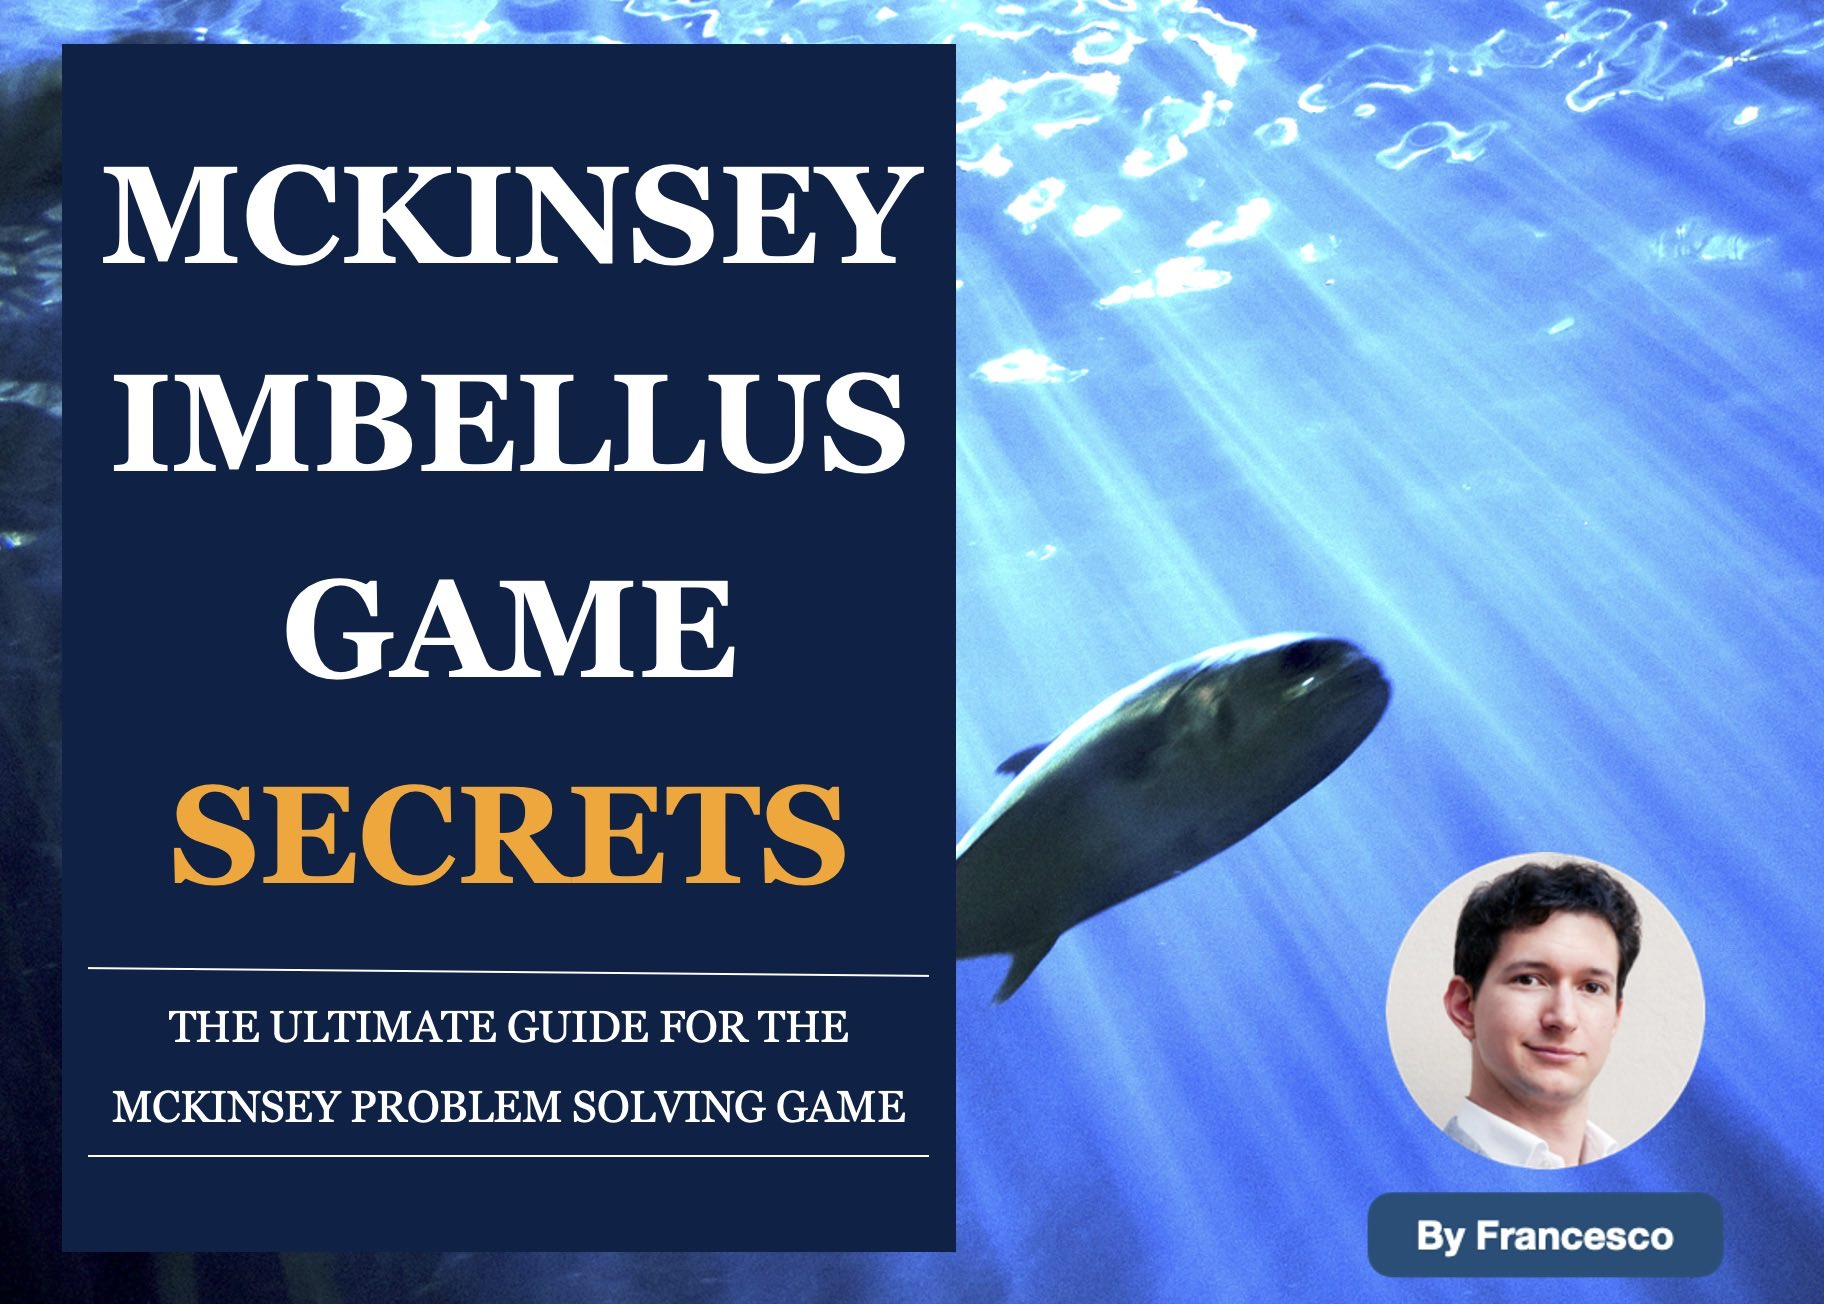 McKinsey Imbellus Guide by Francesco